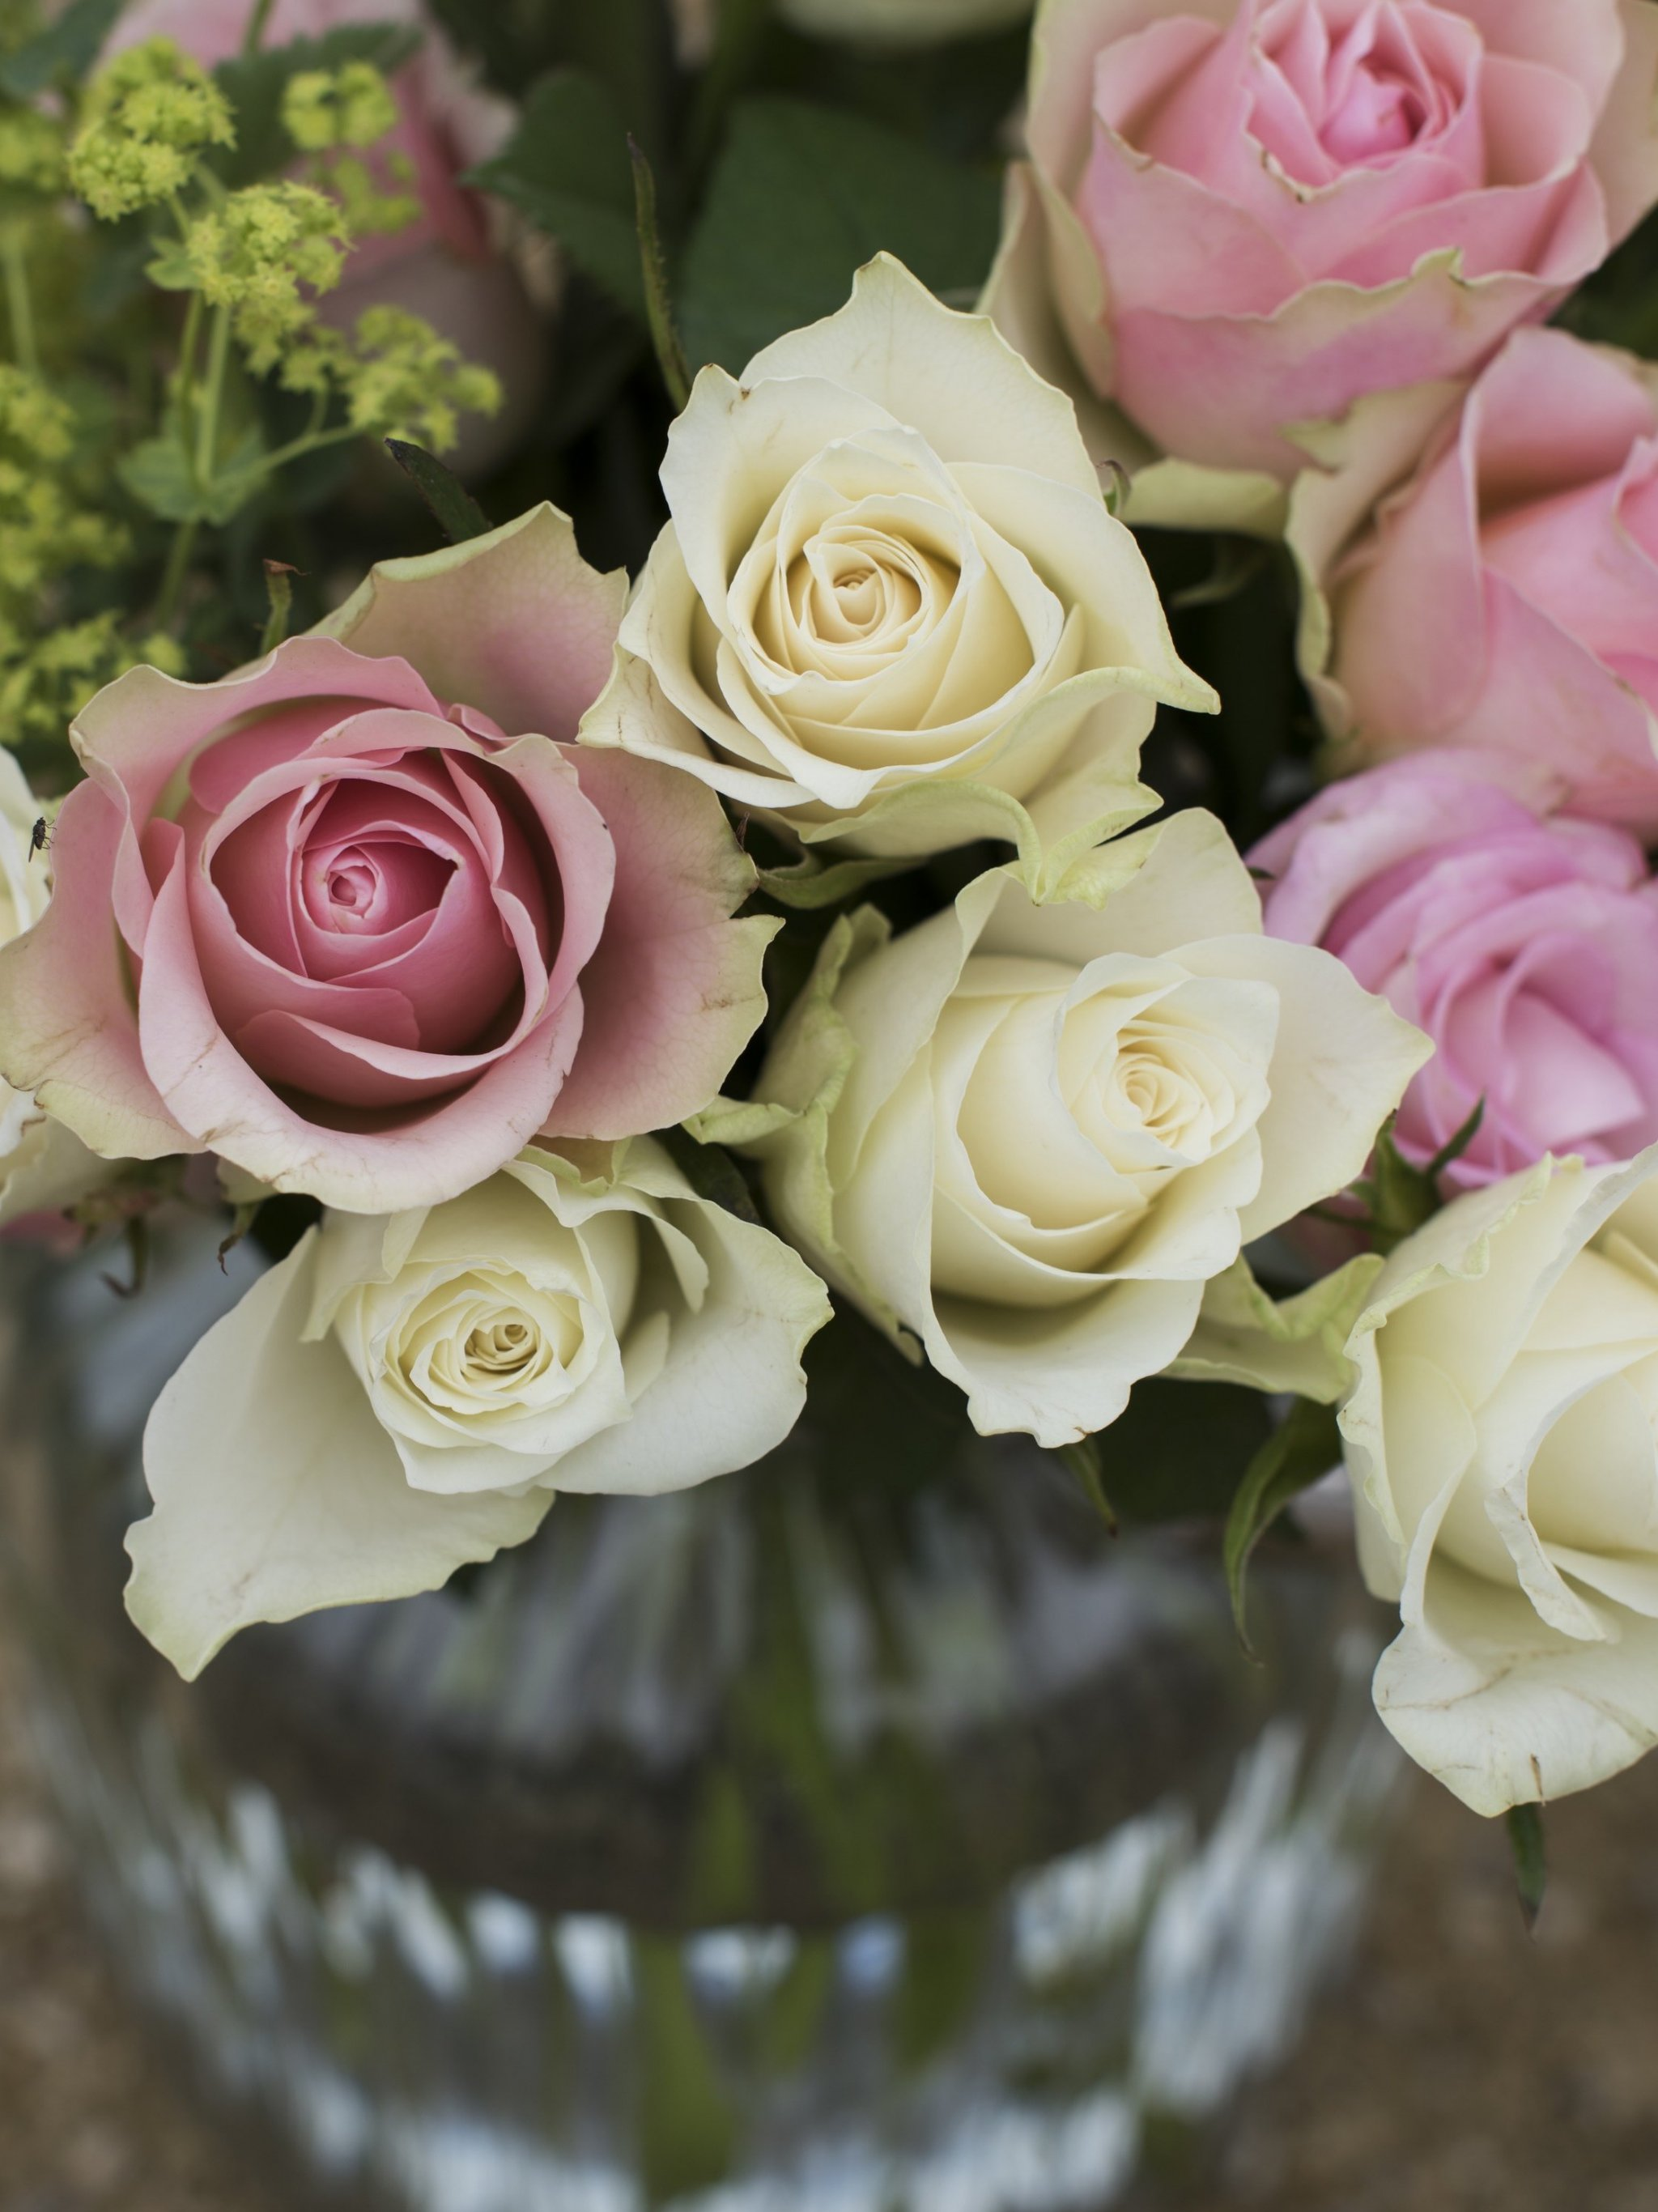 Pink White Roses In A Vase Wallpaper Iphone Android Desktop